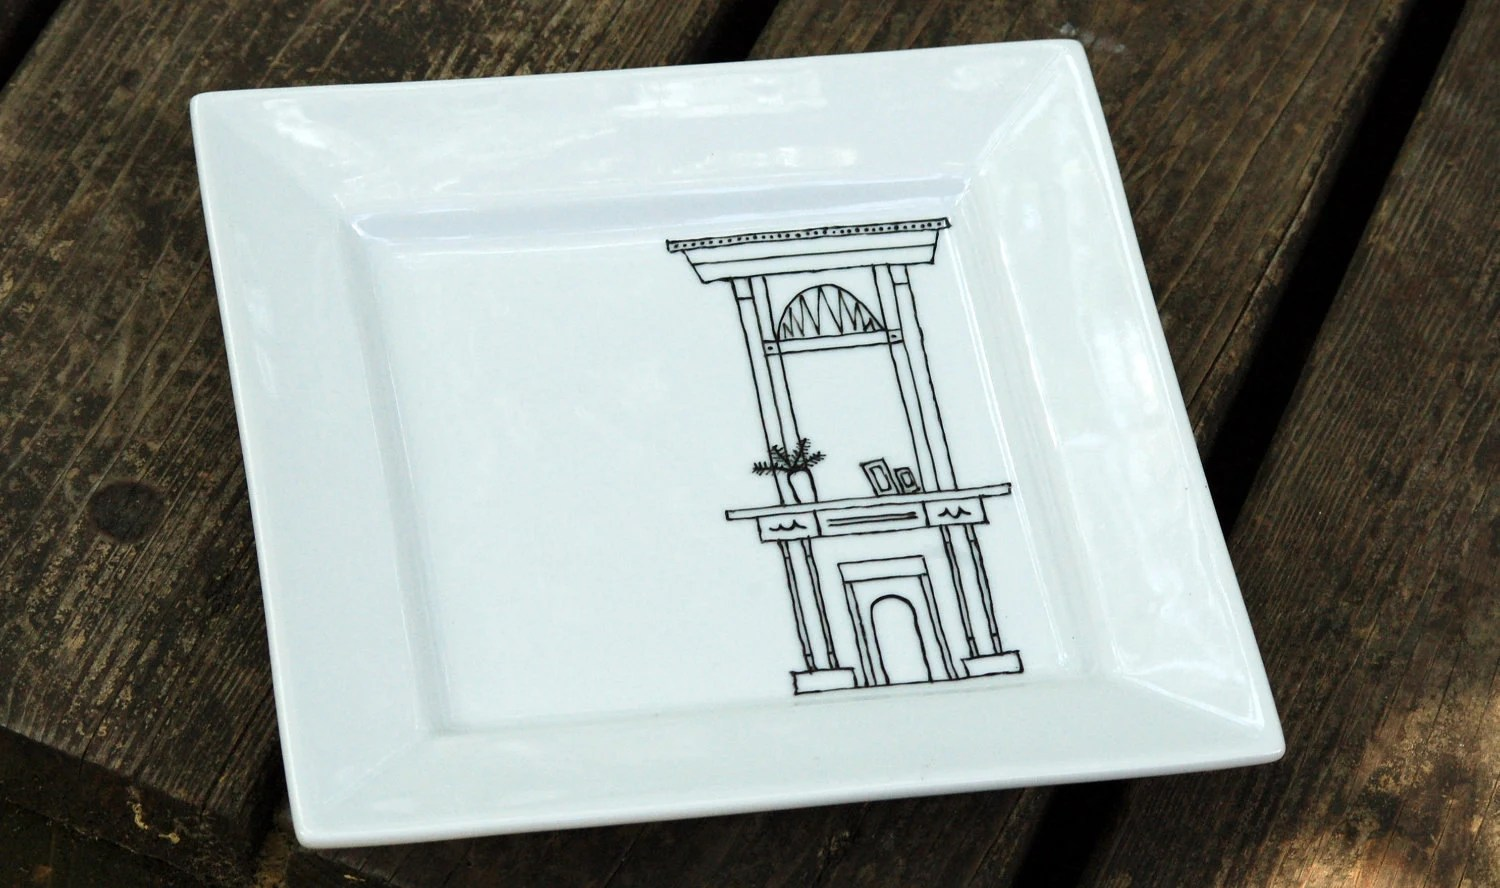 new orleans fireplace plate - porcelain - black and white hand drawn illustration